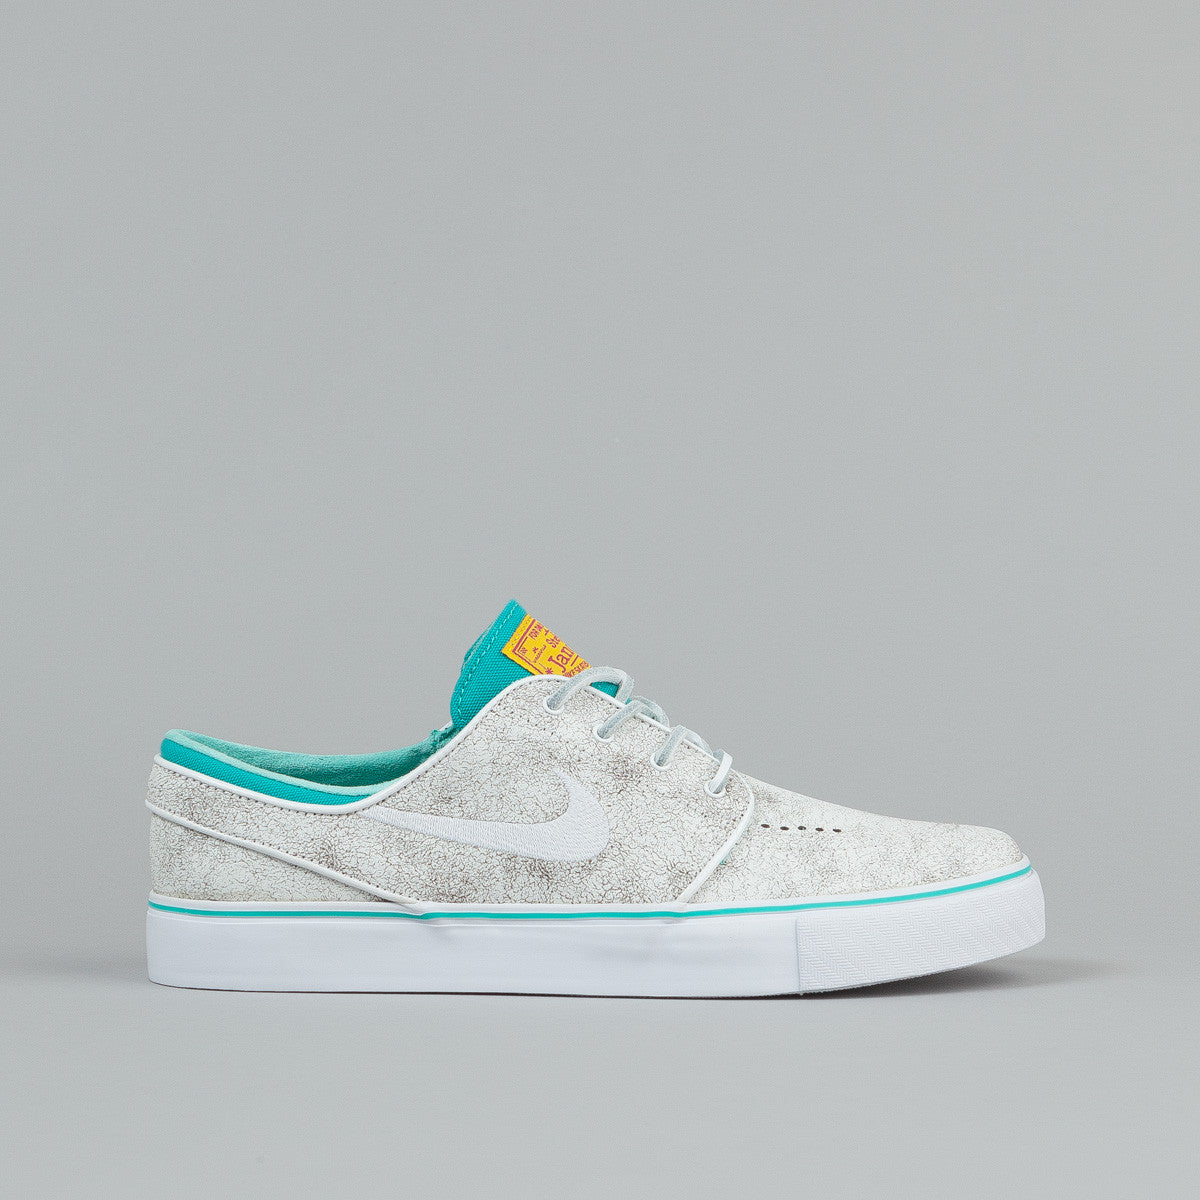 Nike SB Stefan Janoski Elite Shoes 'Flamingo'